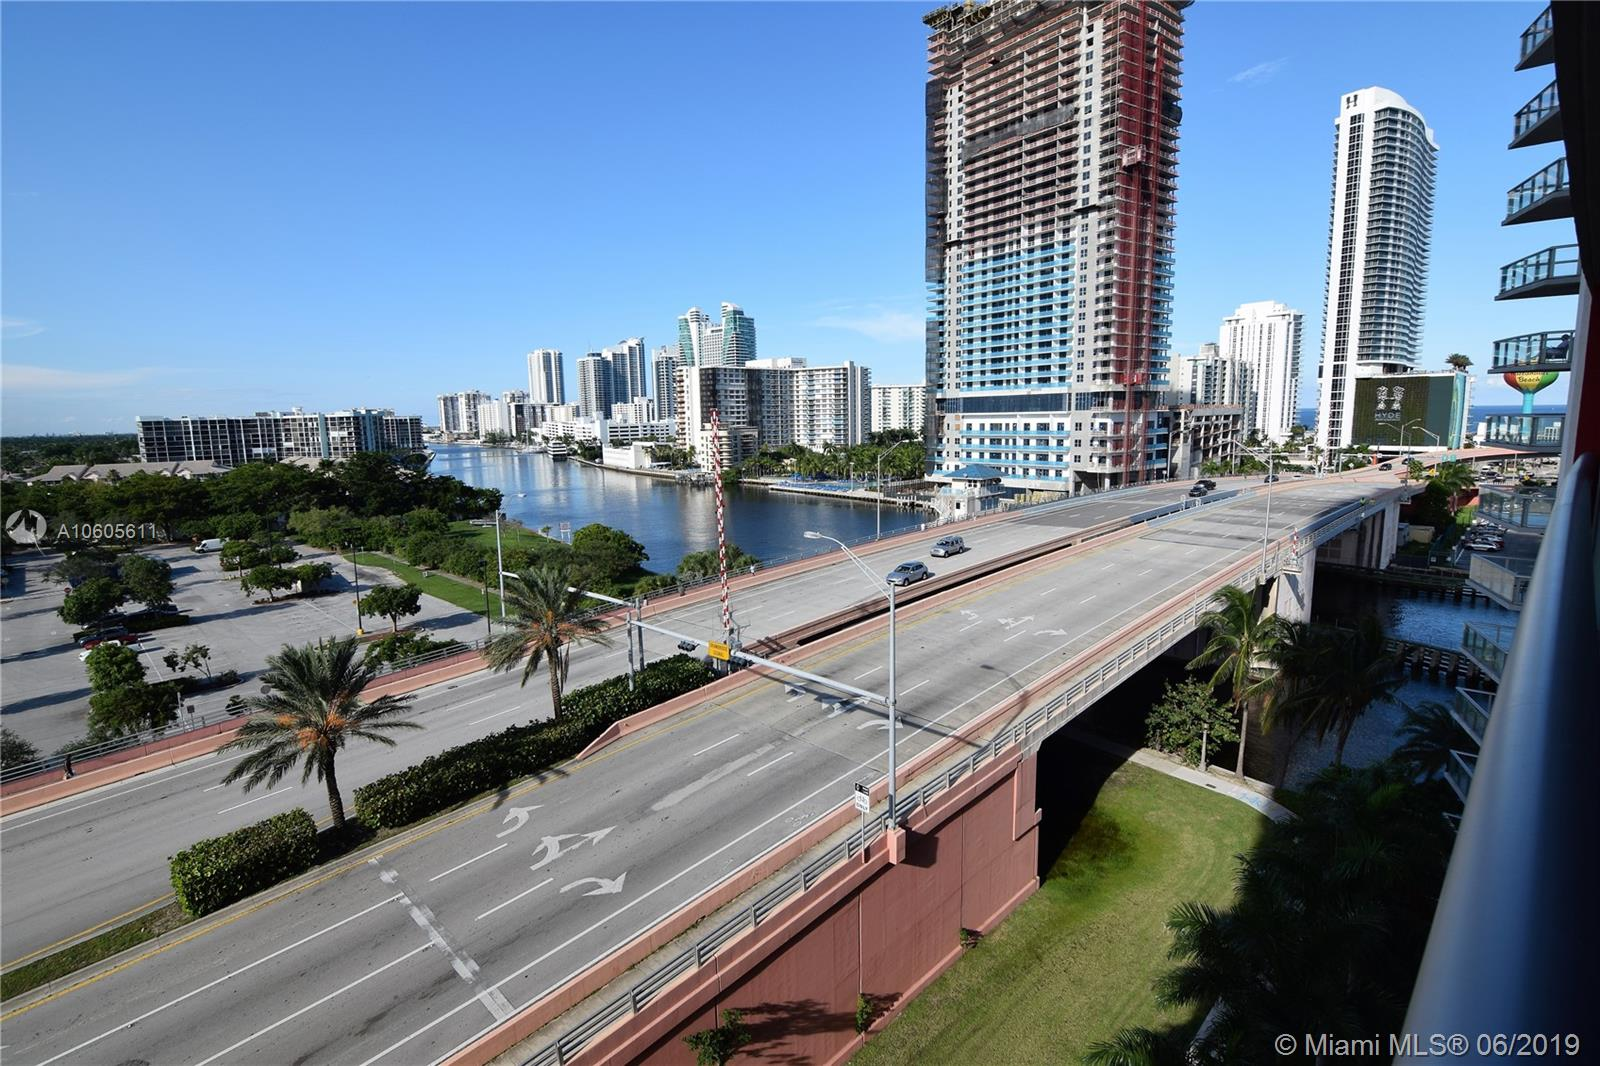 Beachwalk, 2602 E Hallandale Beach Blvd Unit R906, Hallandale Beach, Florida 33009